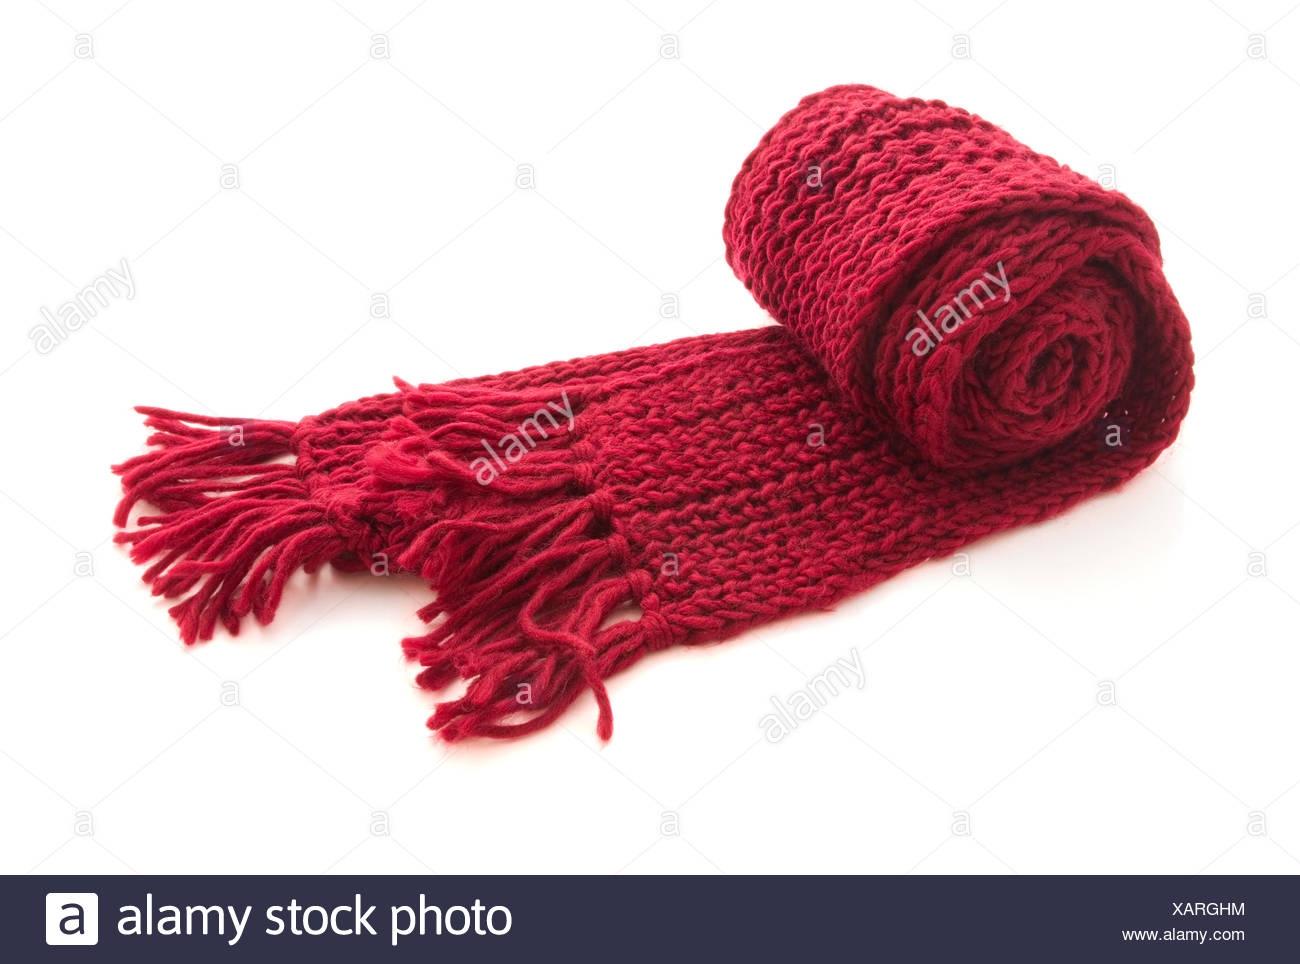 Wool knitted scarf - Stock Image